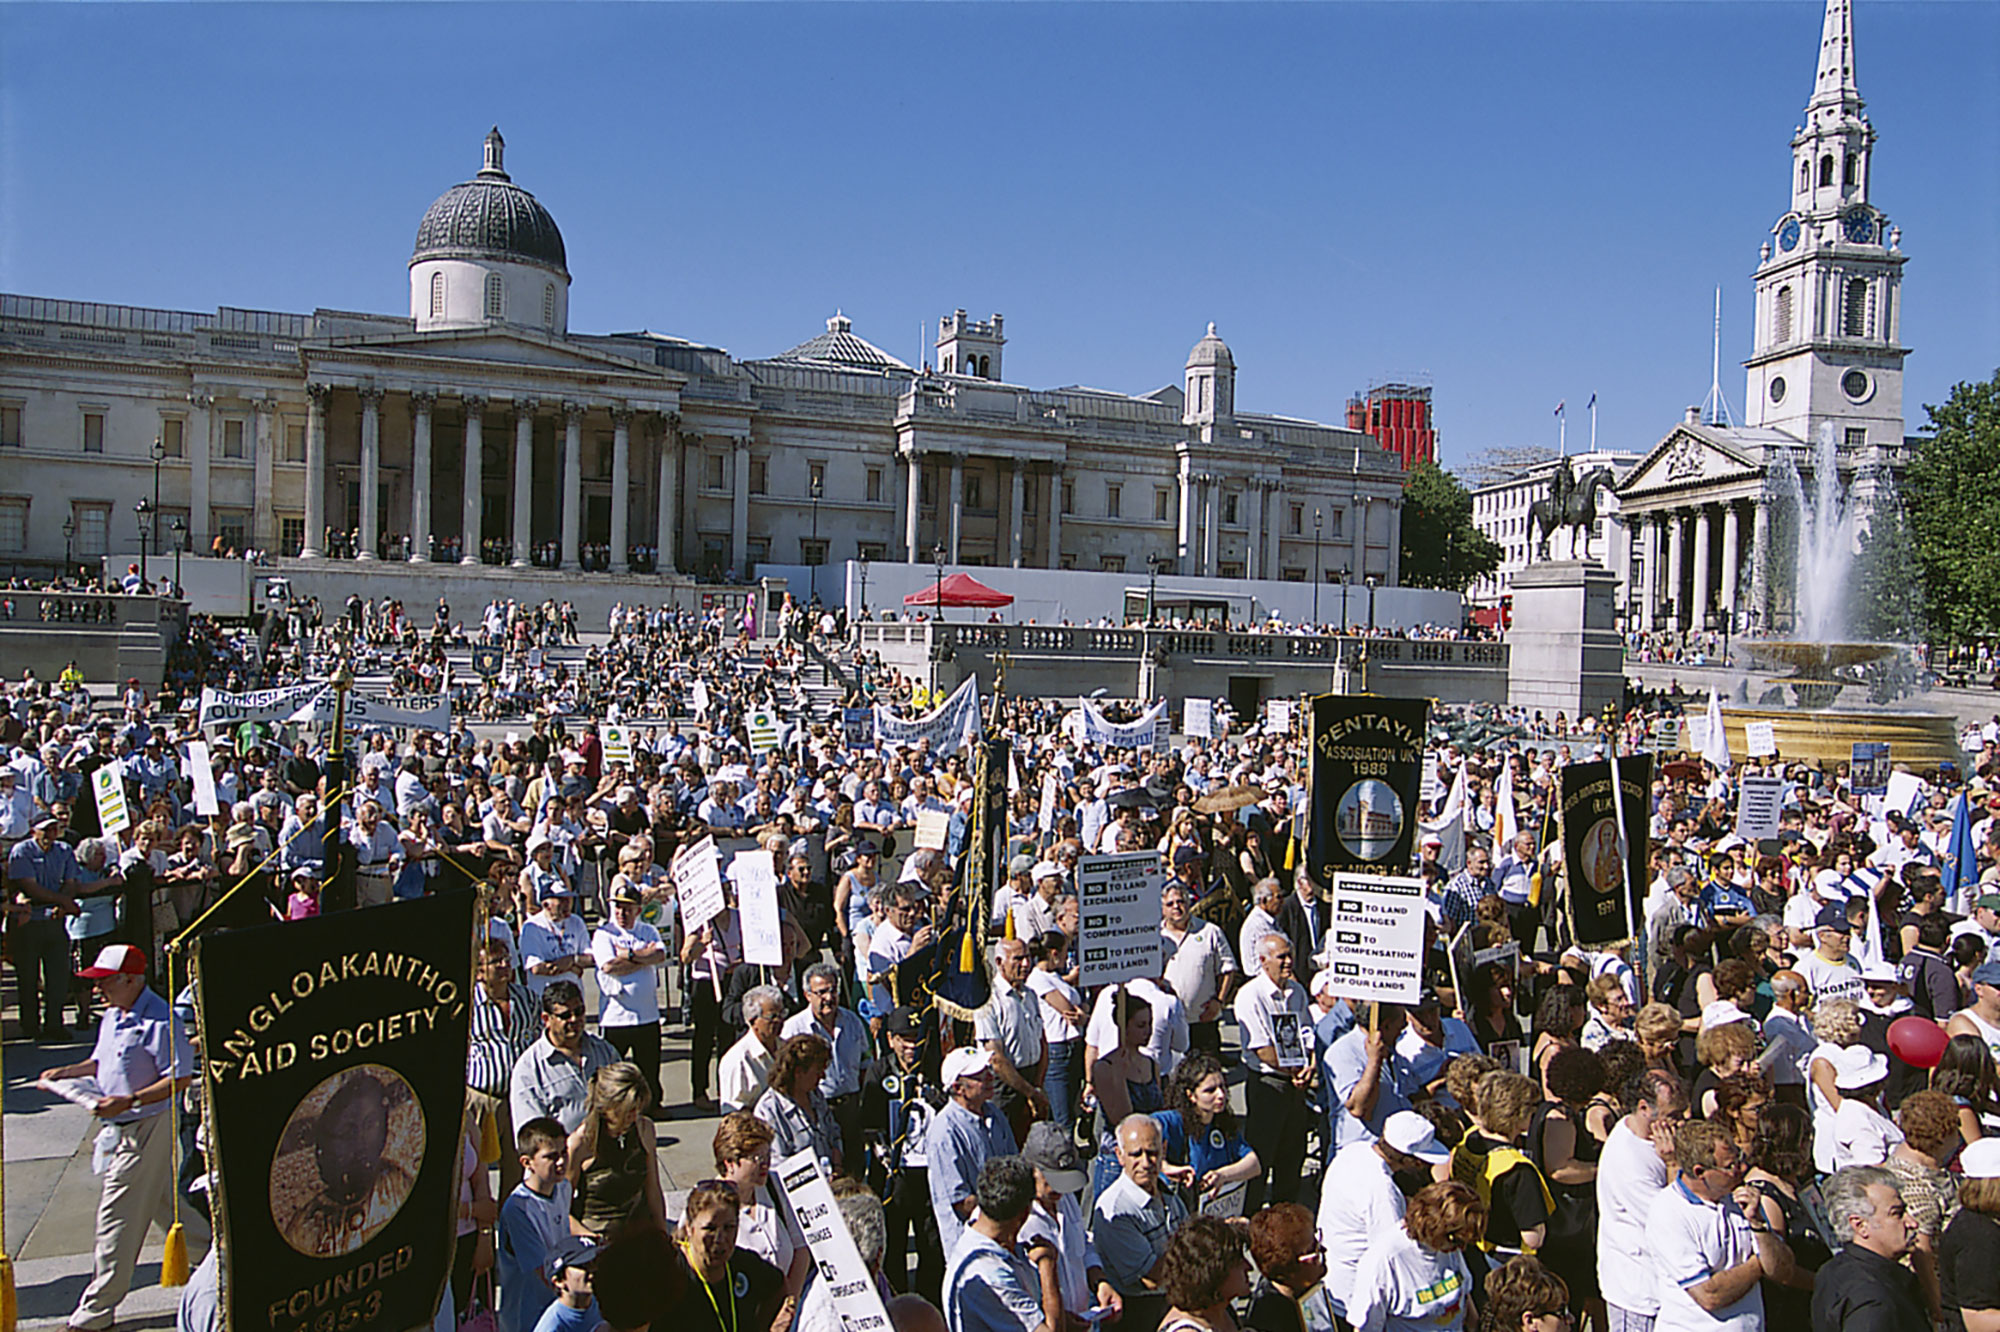 Trafalgar Square is now a popular site for public protest. Credit Nigel Young, Foster + Partners